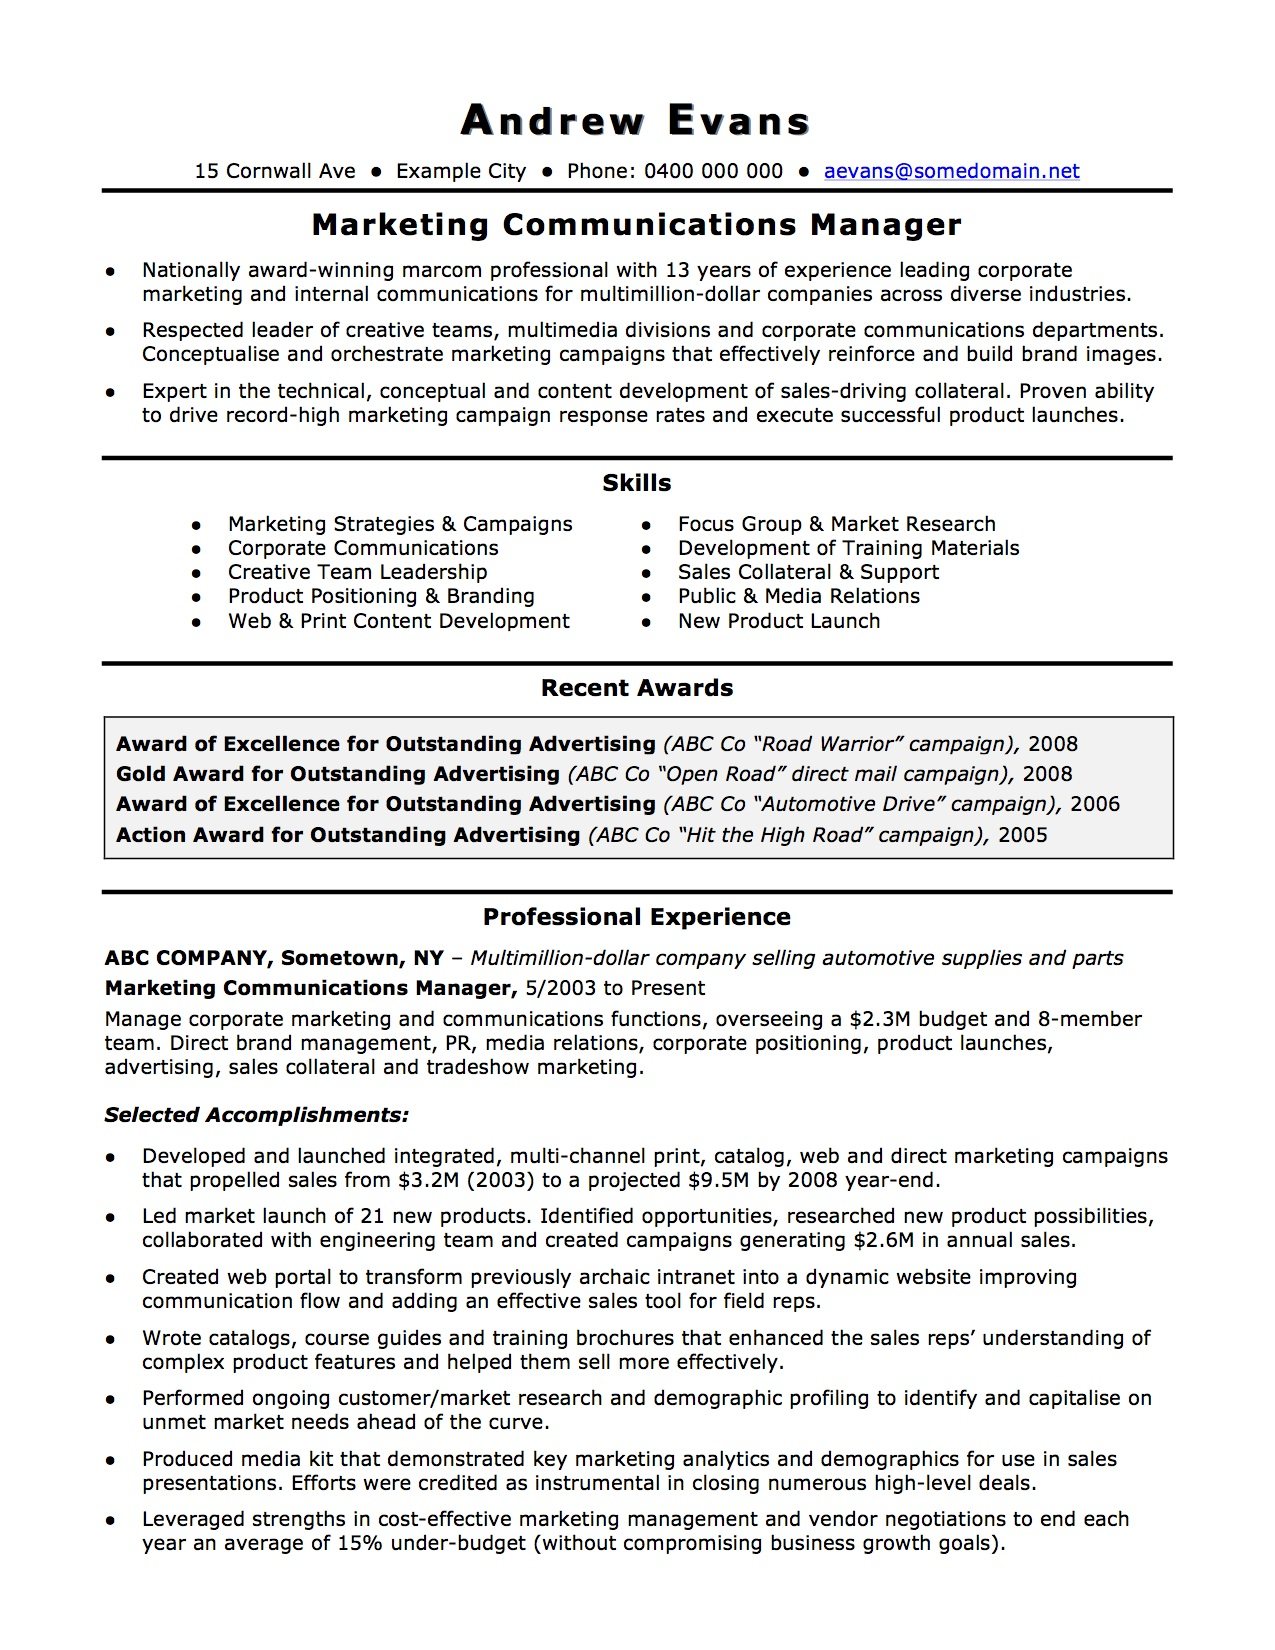 cv layout rules cover letter resume examples cv layout rules what to write in the skills and competences section of cv pics photos